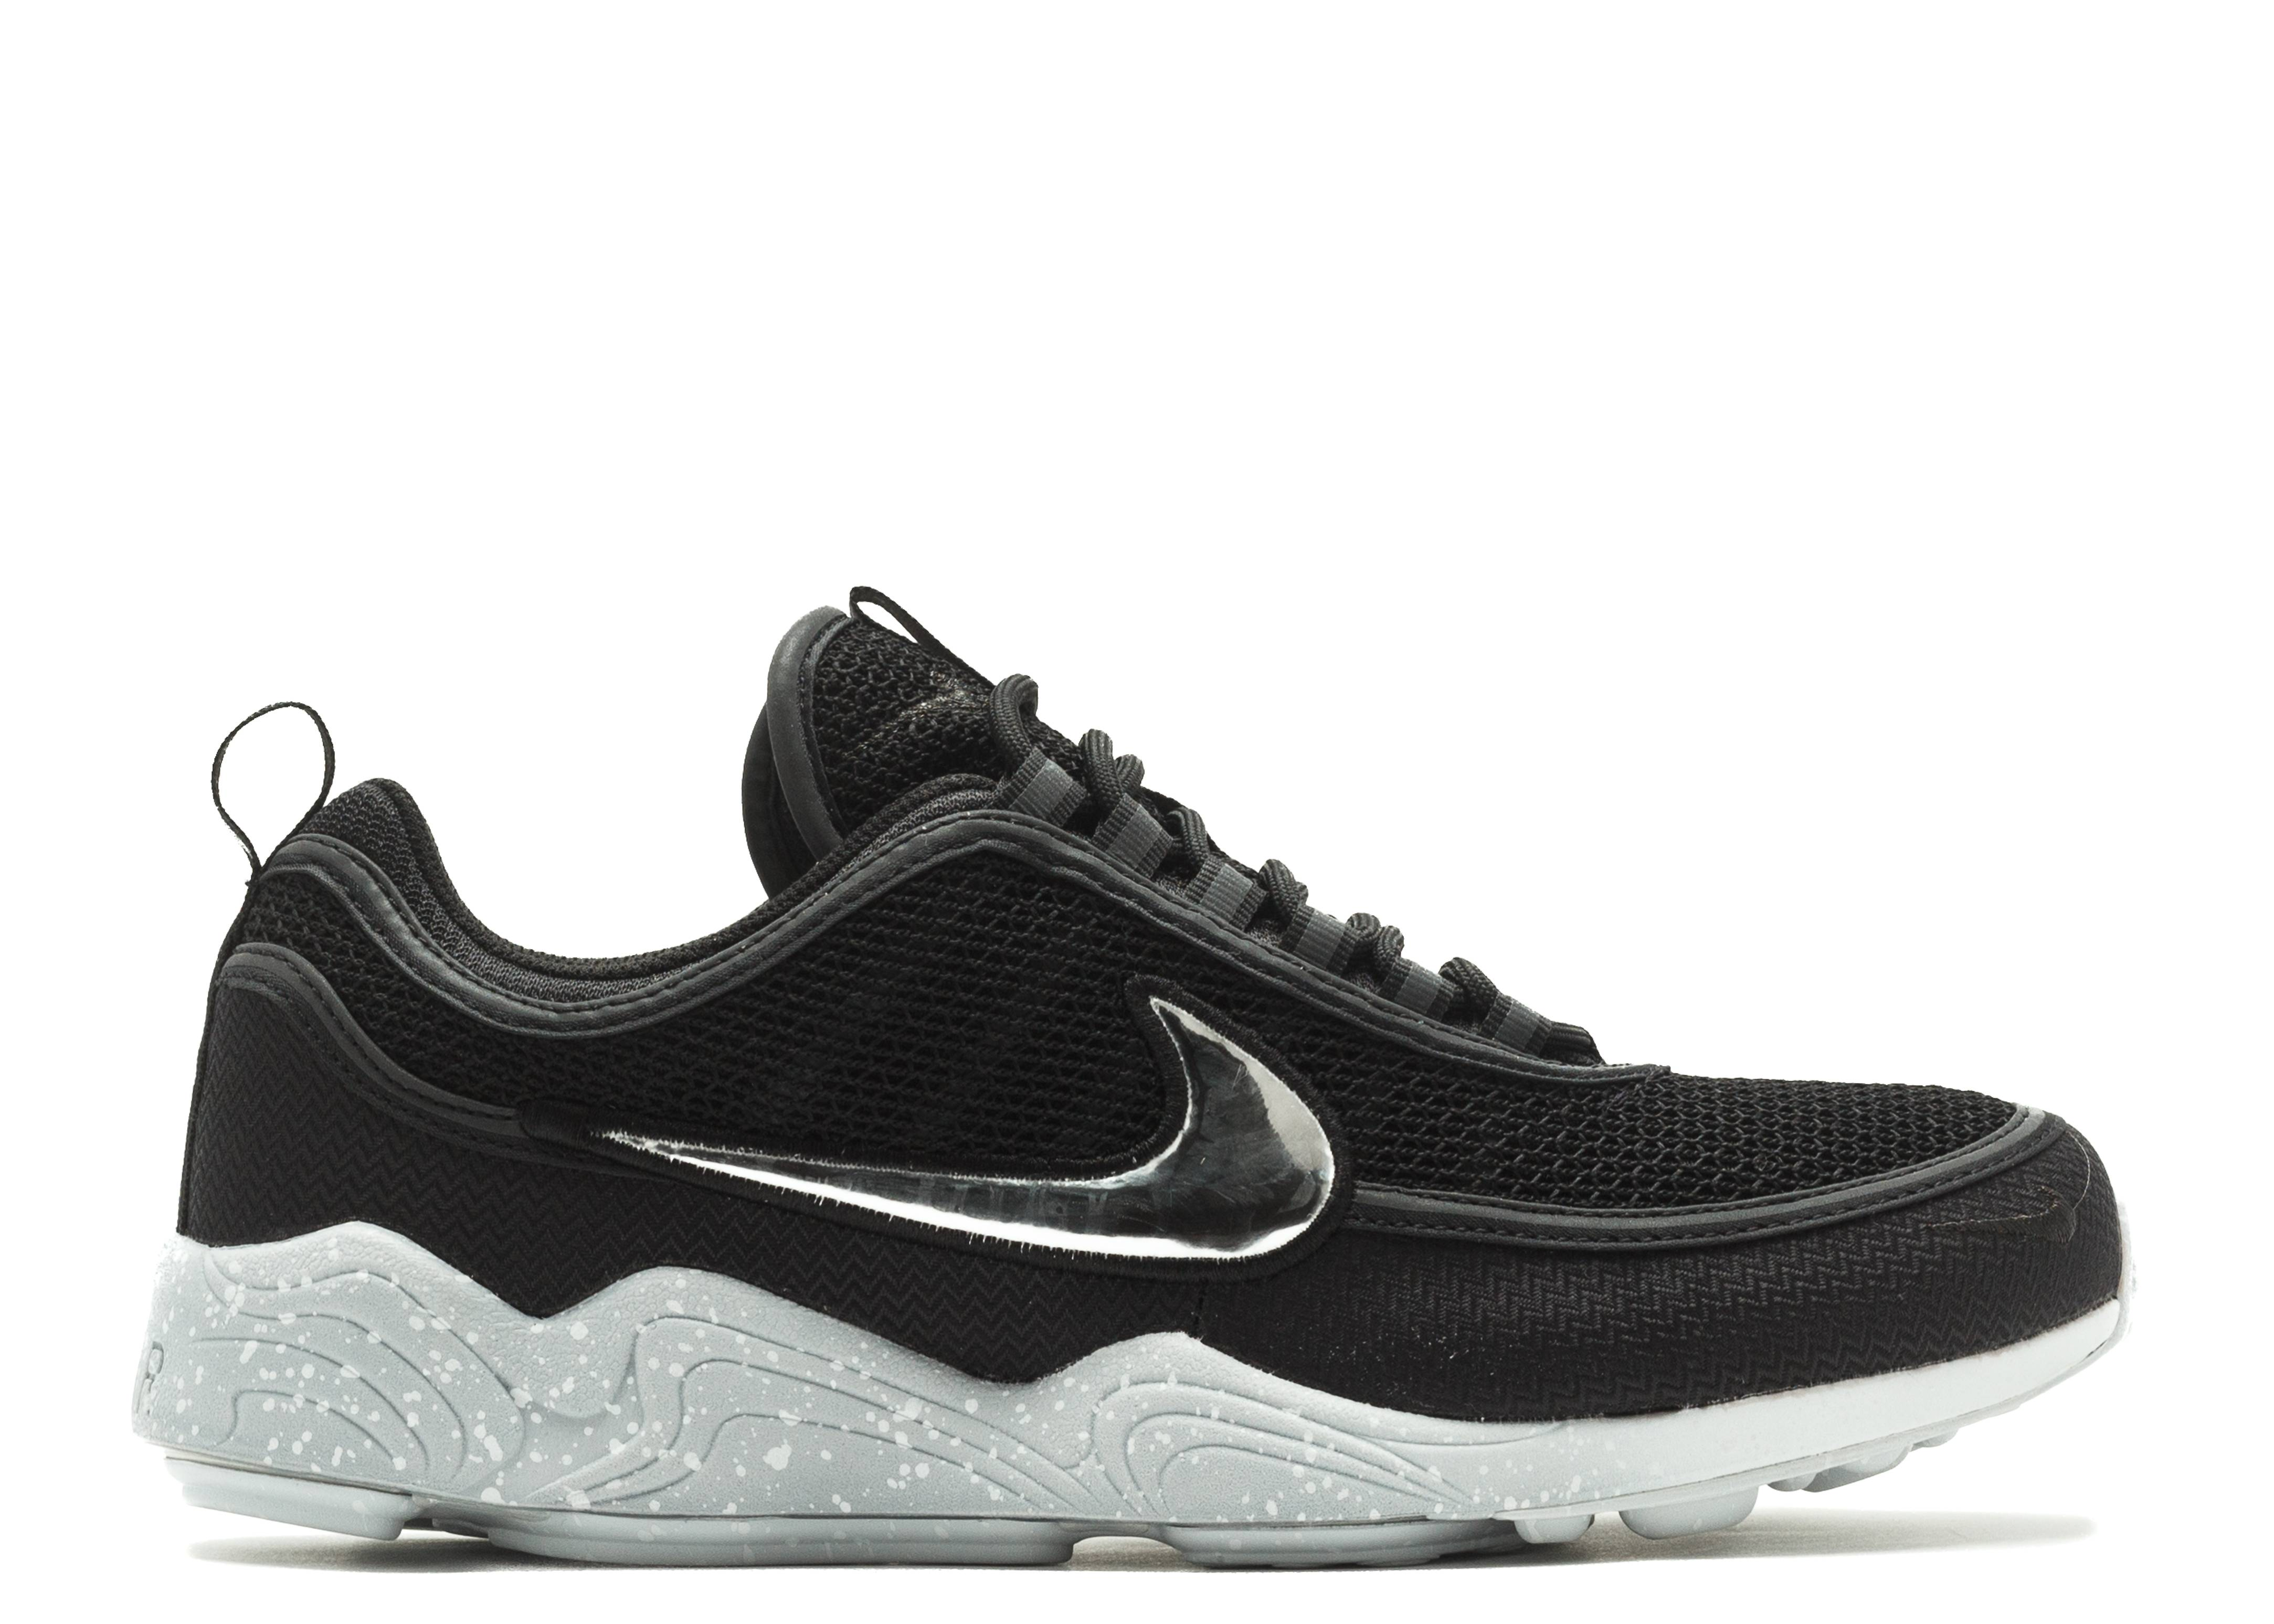 NIKE Air Zoom Spiridon US 11.5 EUR 45.5 NUOVO Air Max